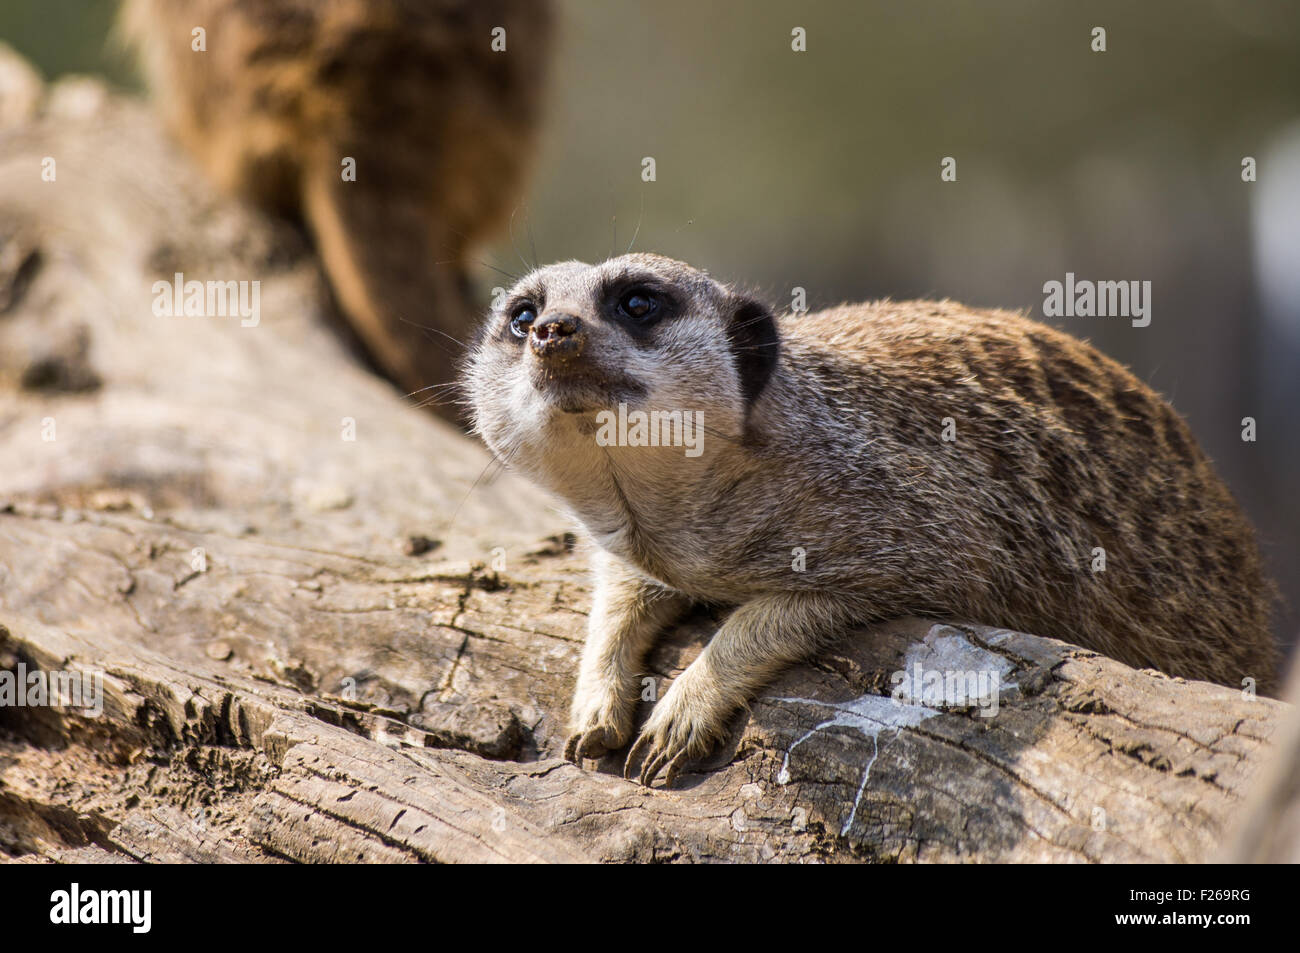 A Meerkat on the look out - Stock Image